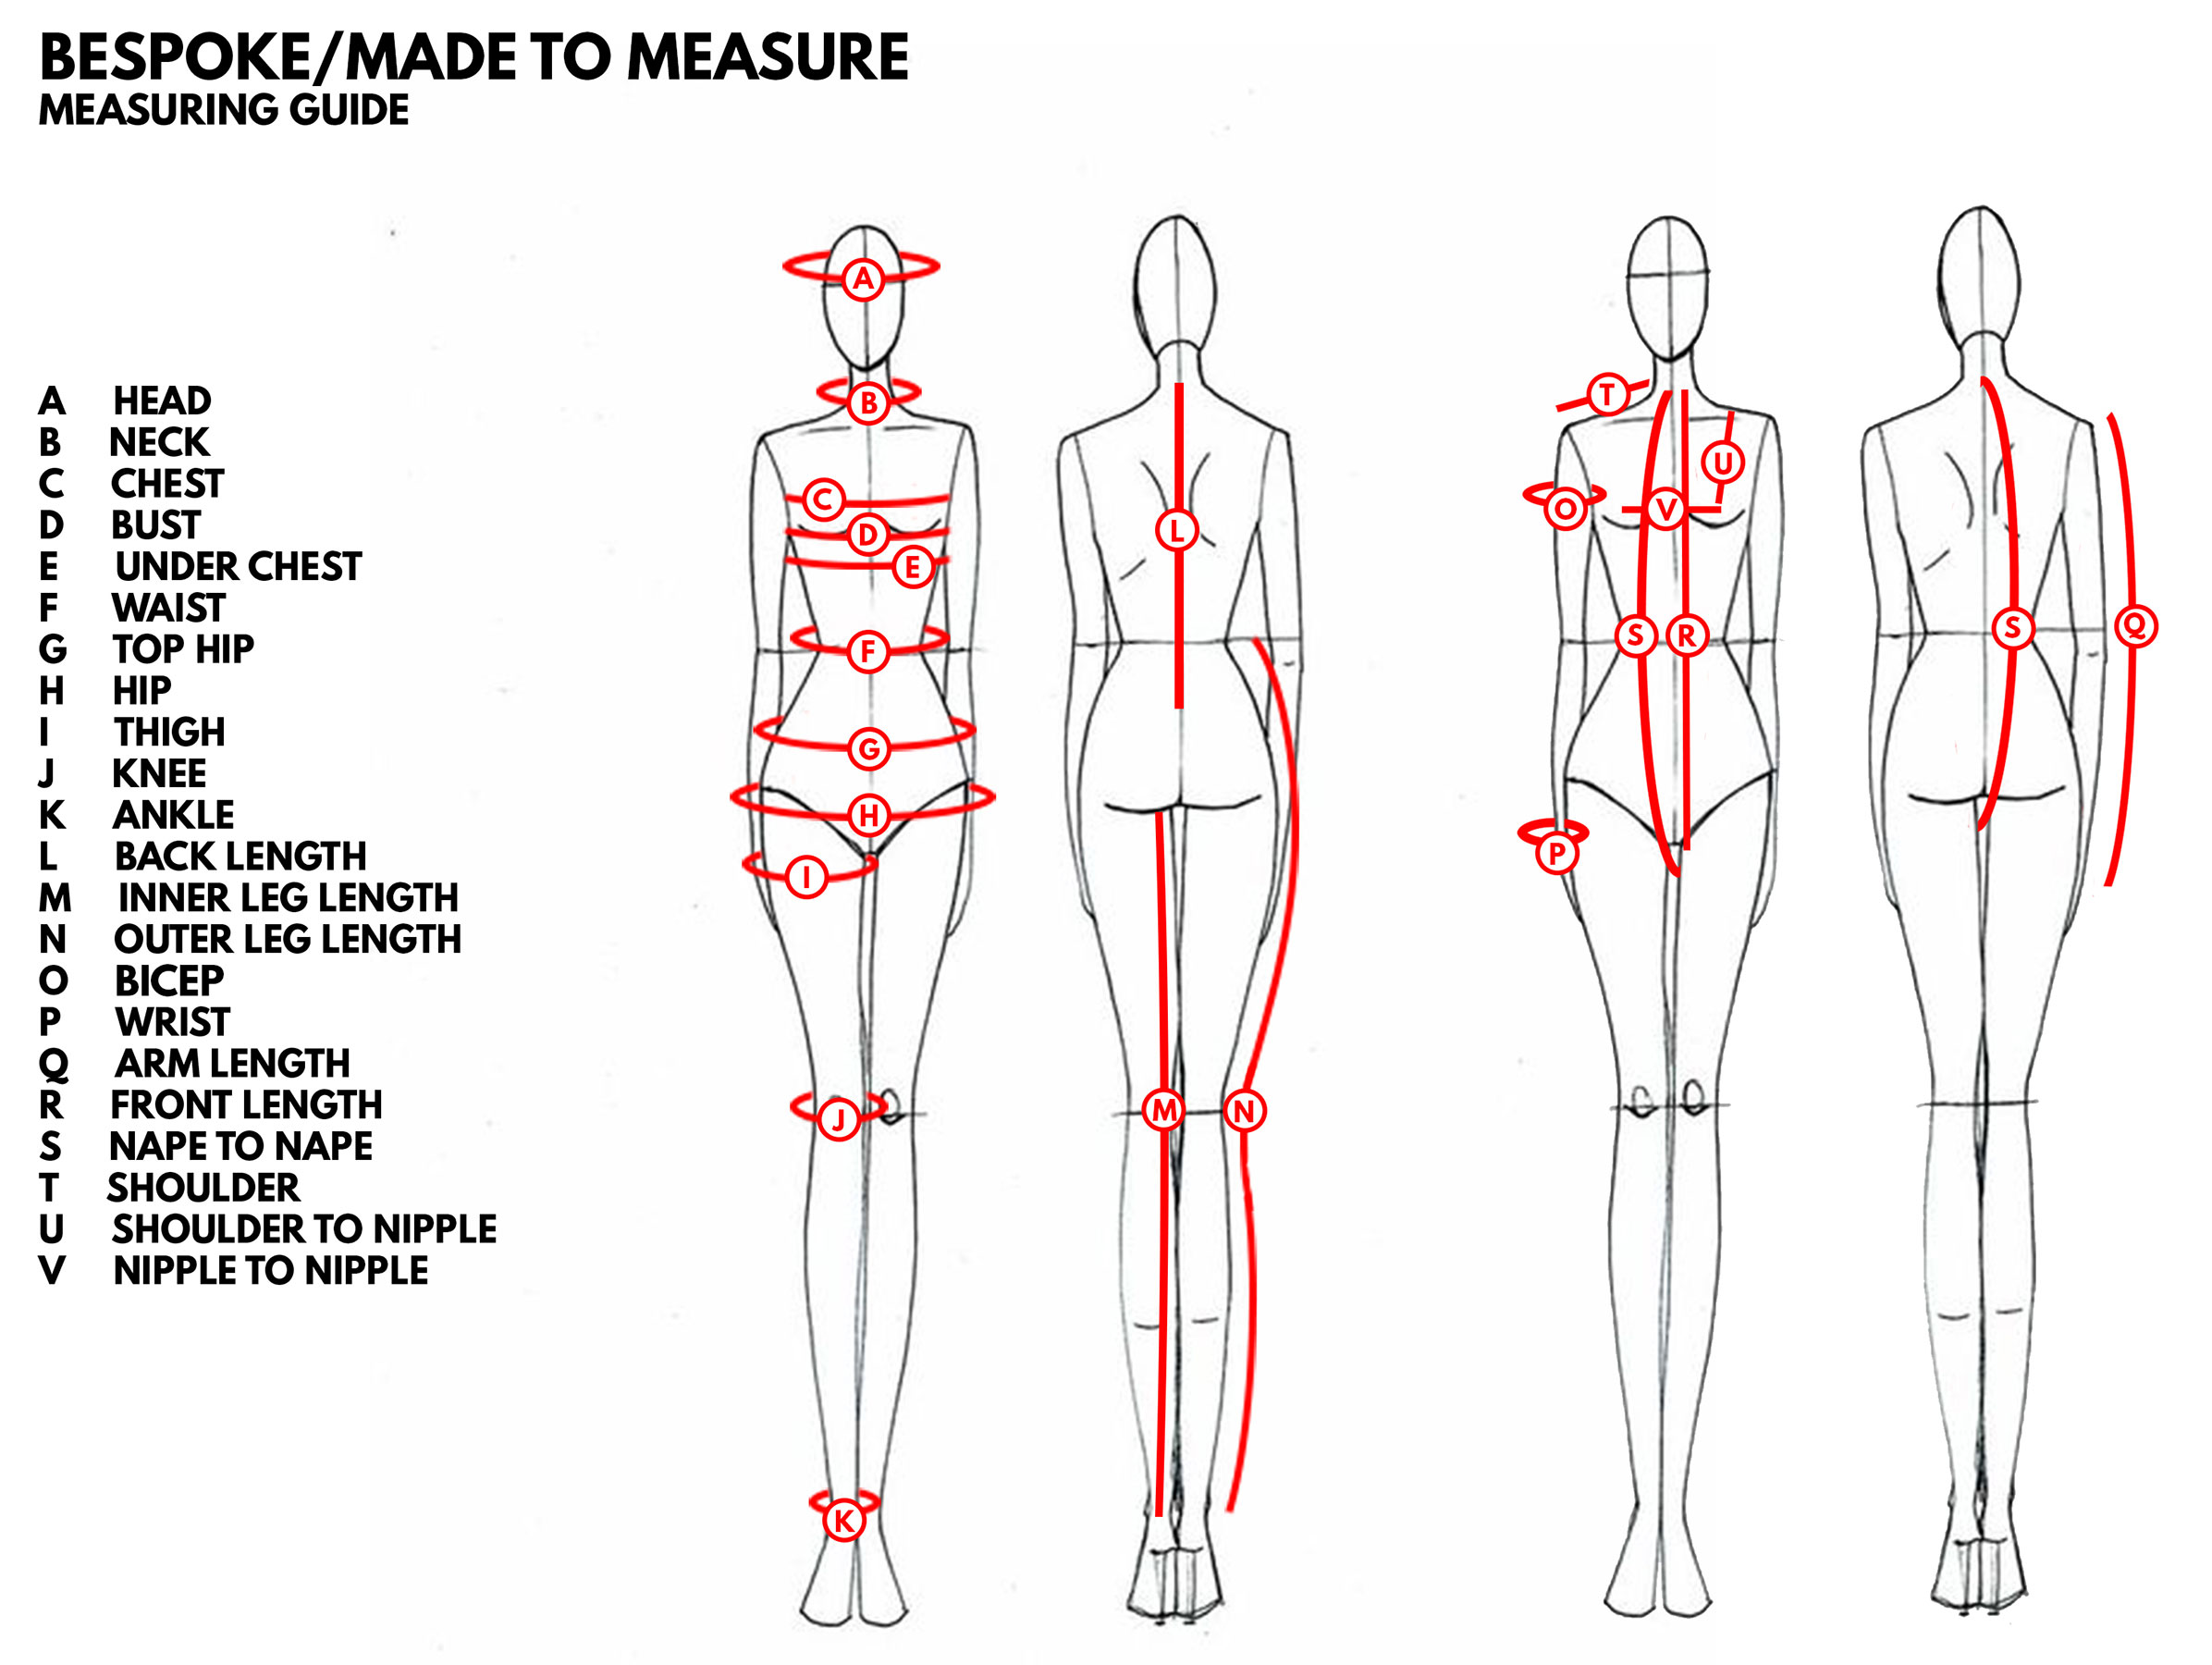 Bespoke Measuring Guide